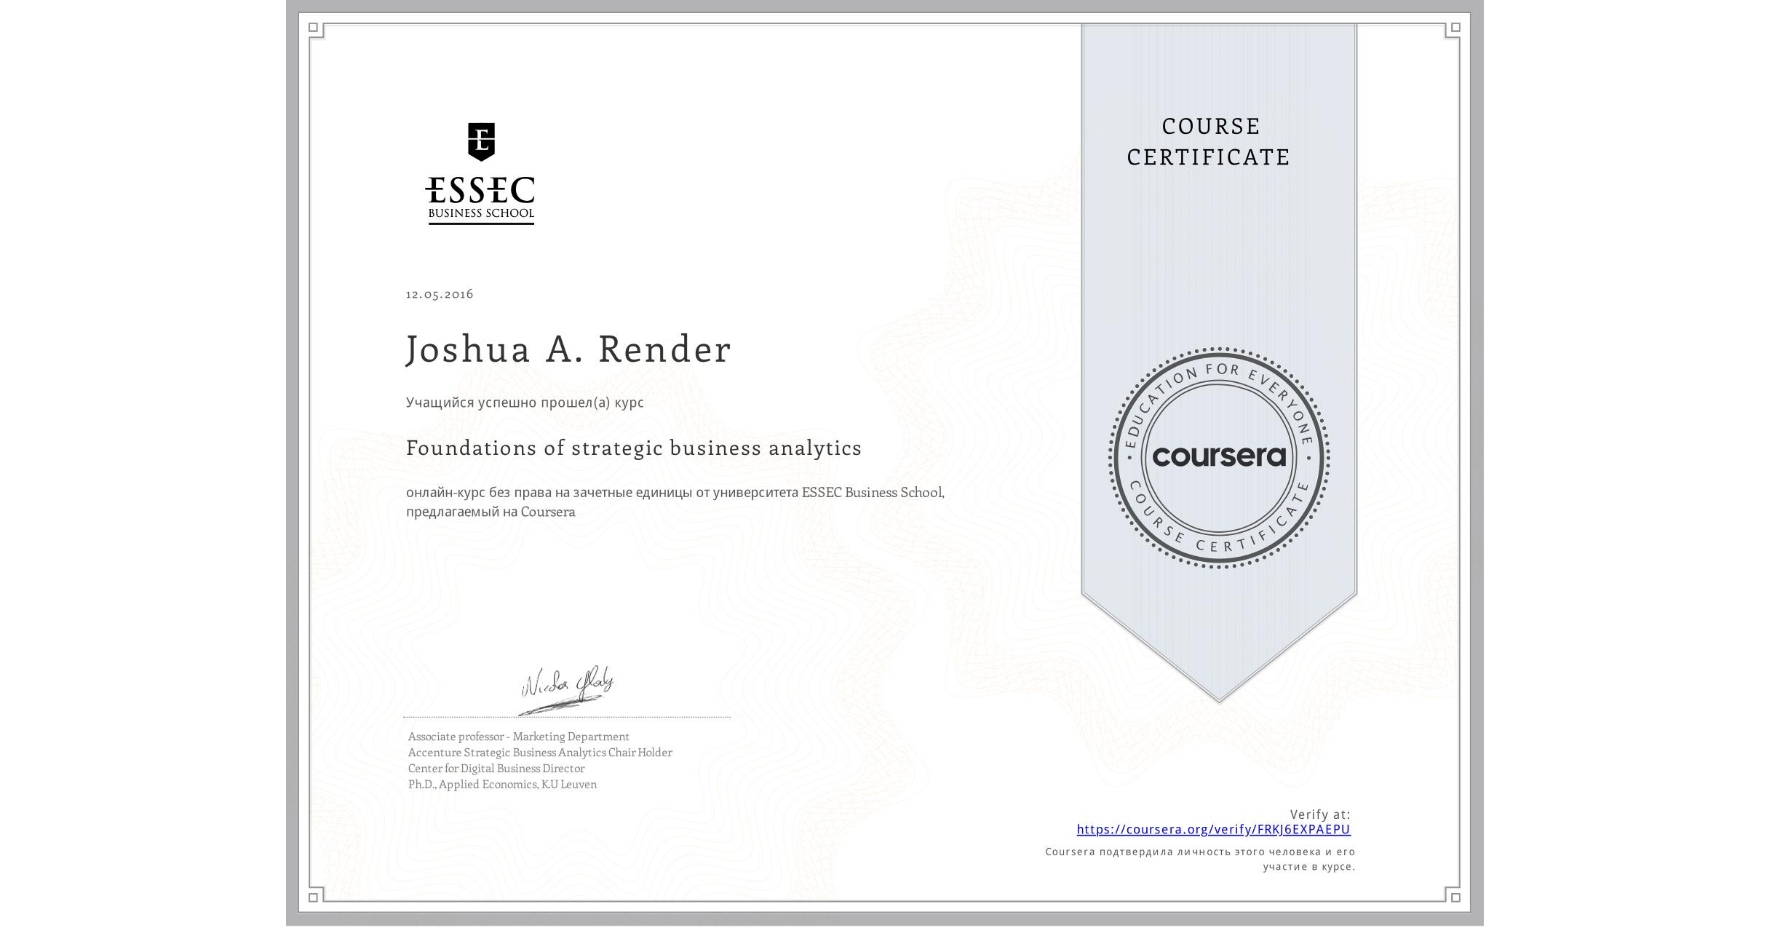 View certificate for Joshua A. Render, Foundations of strategic business analytics, an online non-credit course authorized by ESSEC Business School and offered through Coursera